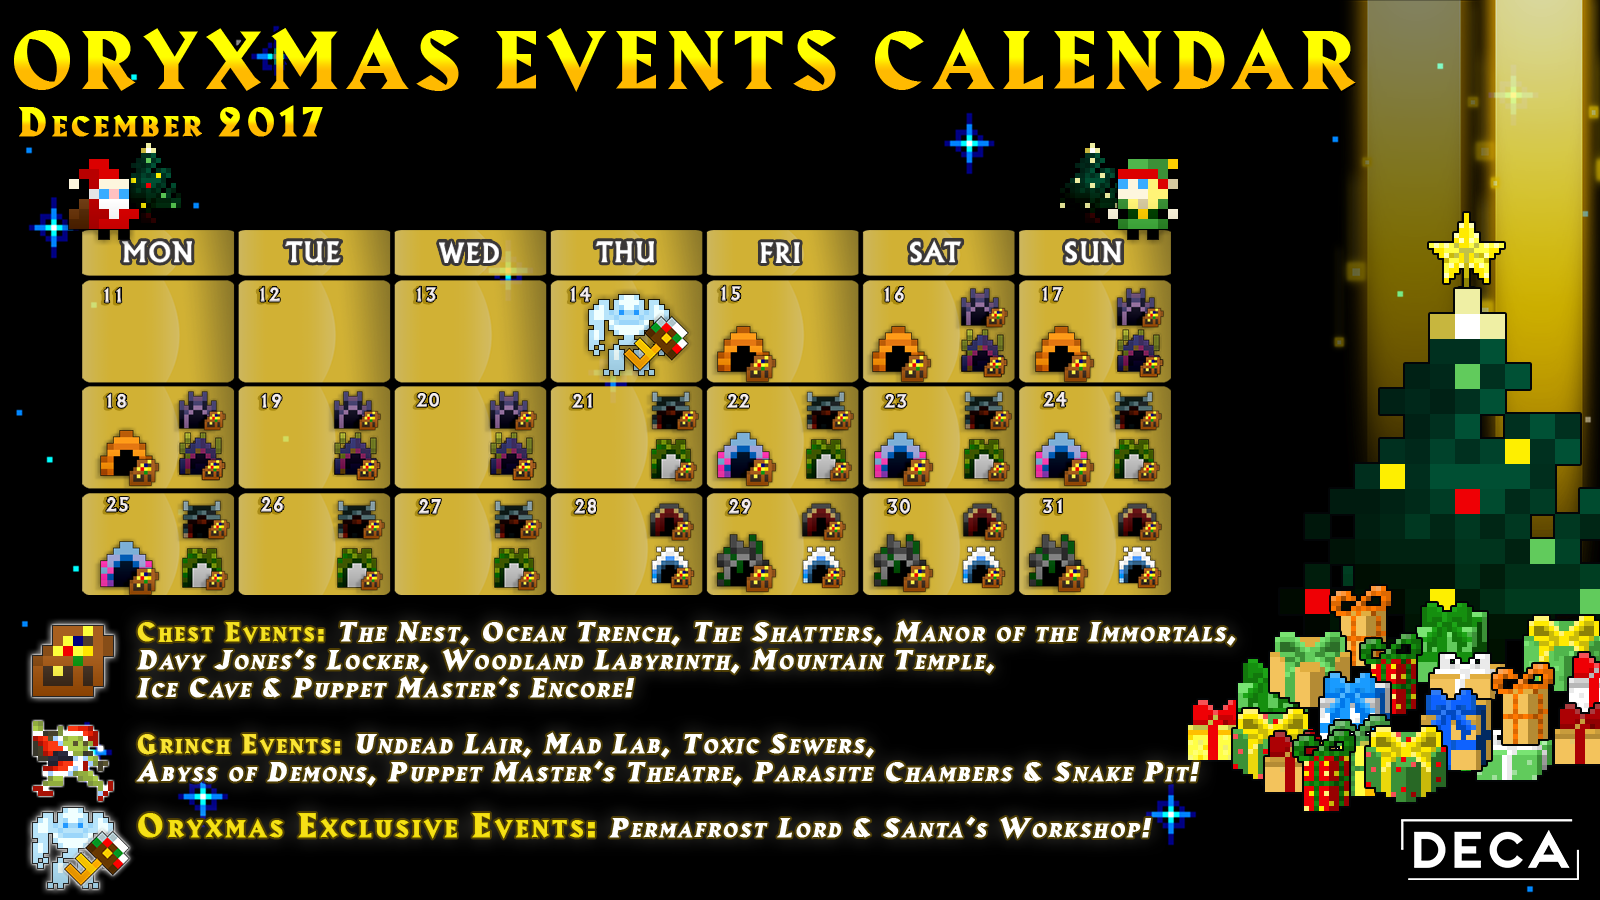 Dec 14, 2017 Patch X 20 1 - Oryxmas Eve! Realm of the Mad